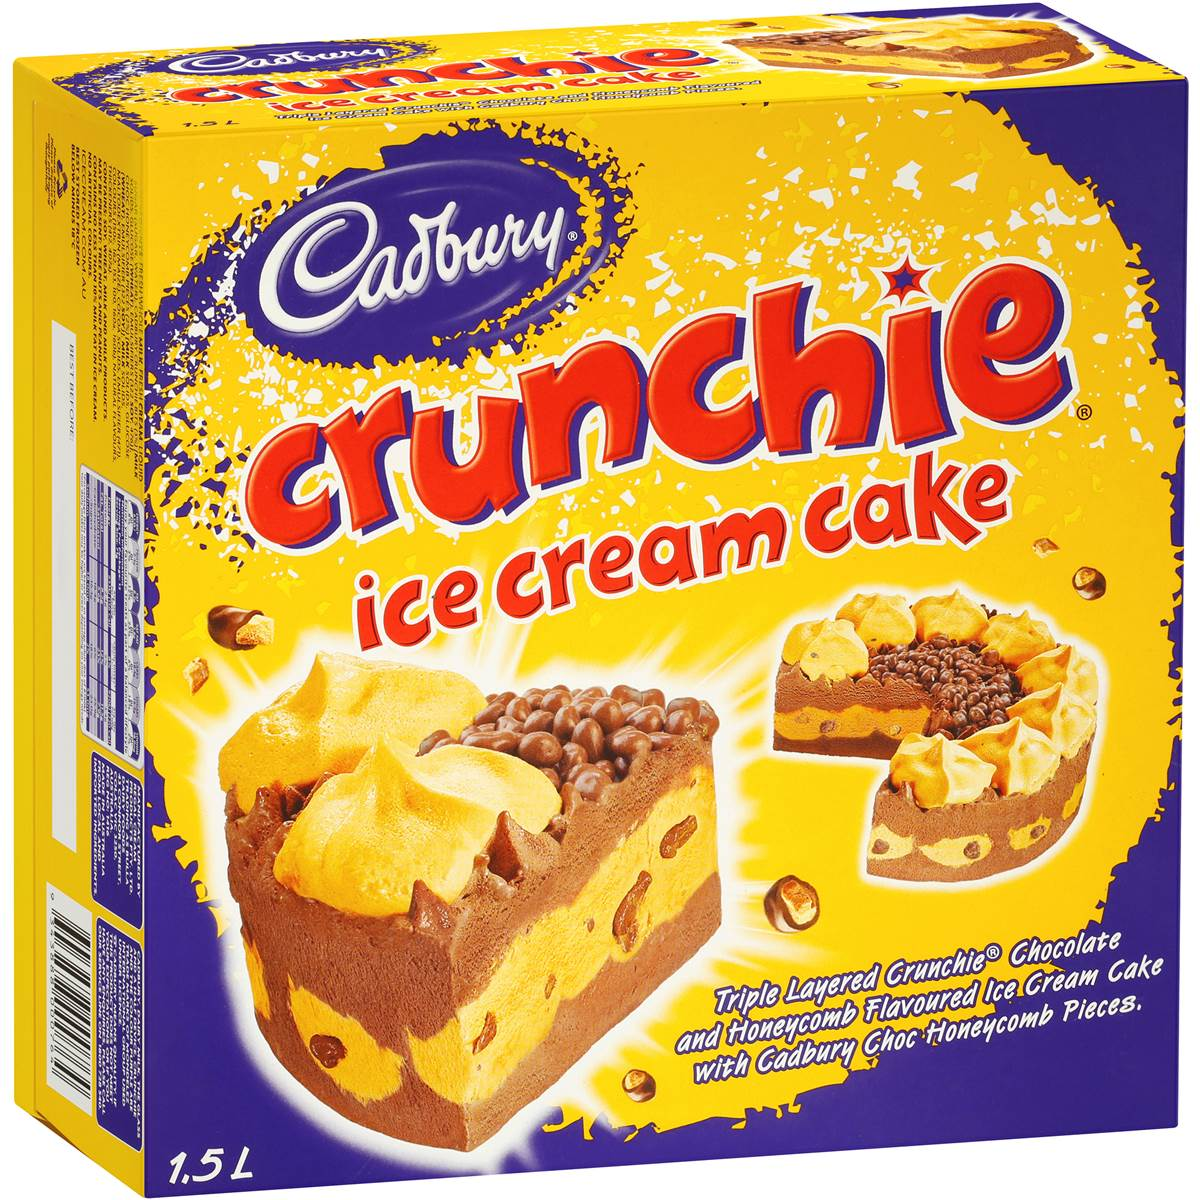 Crunchie Ice Cream Cake Woolworths